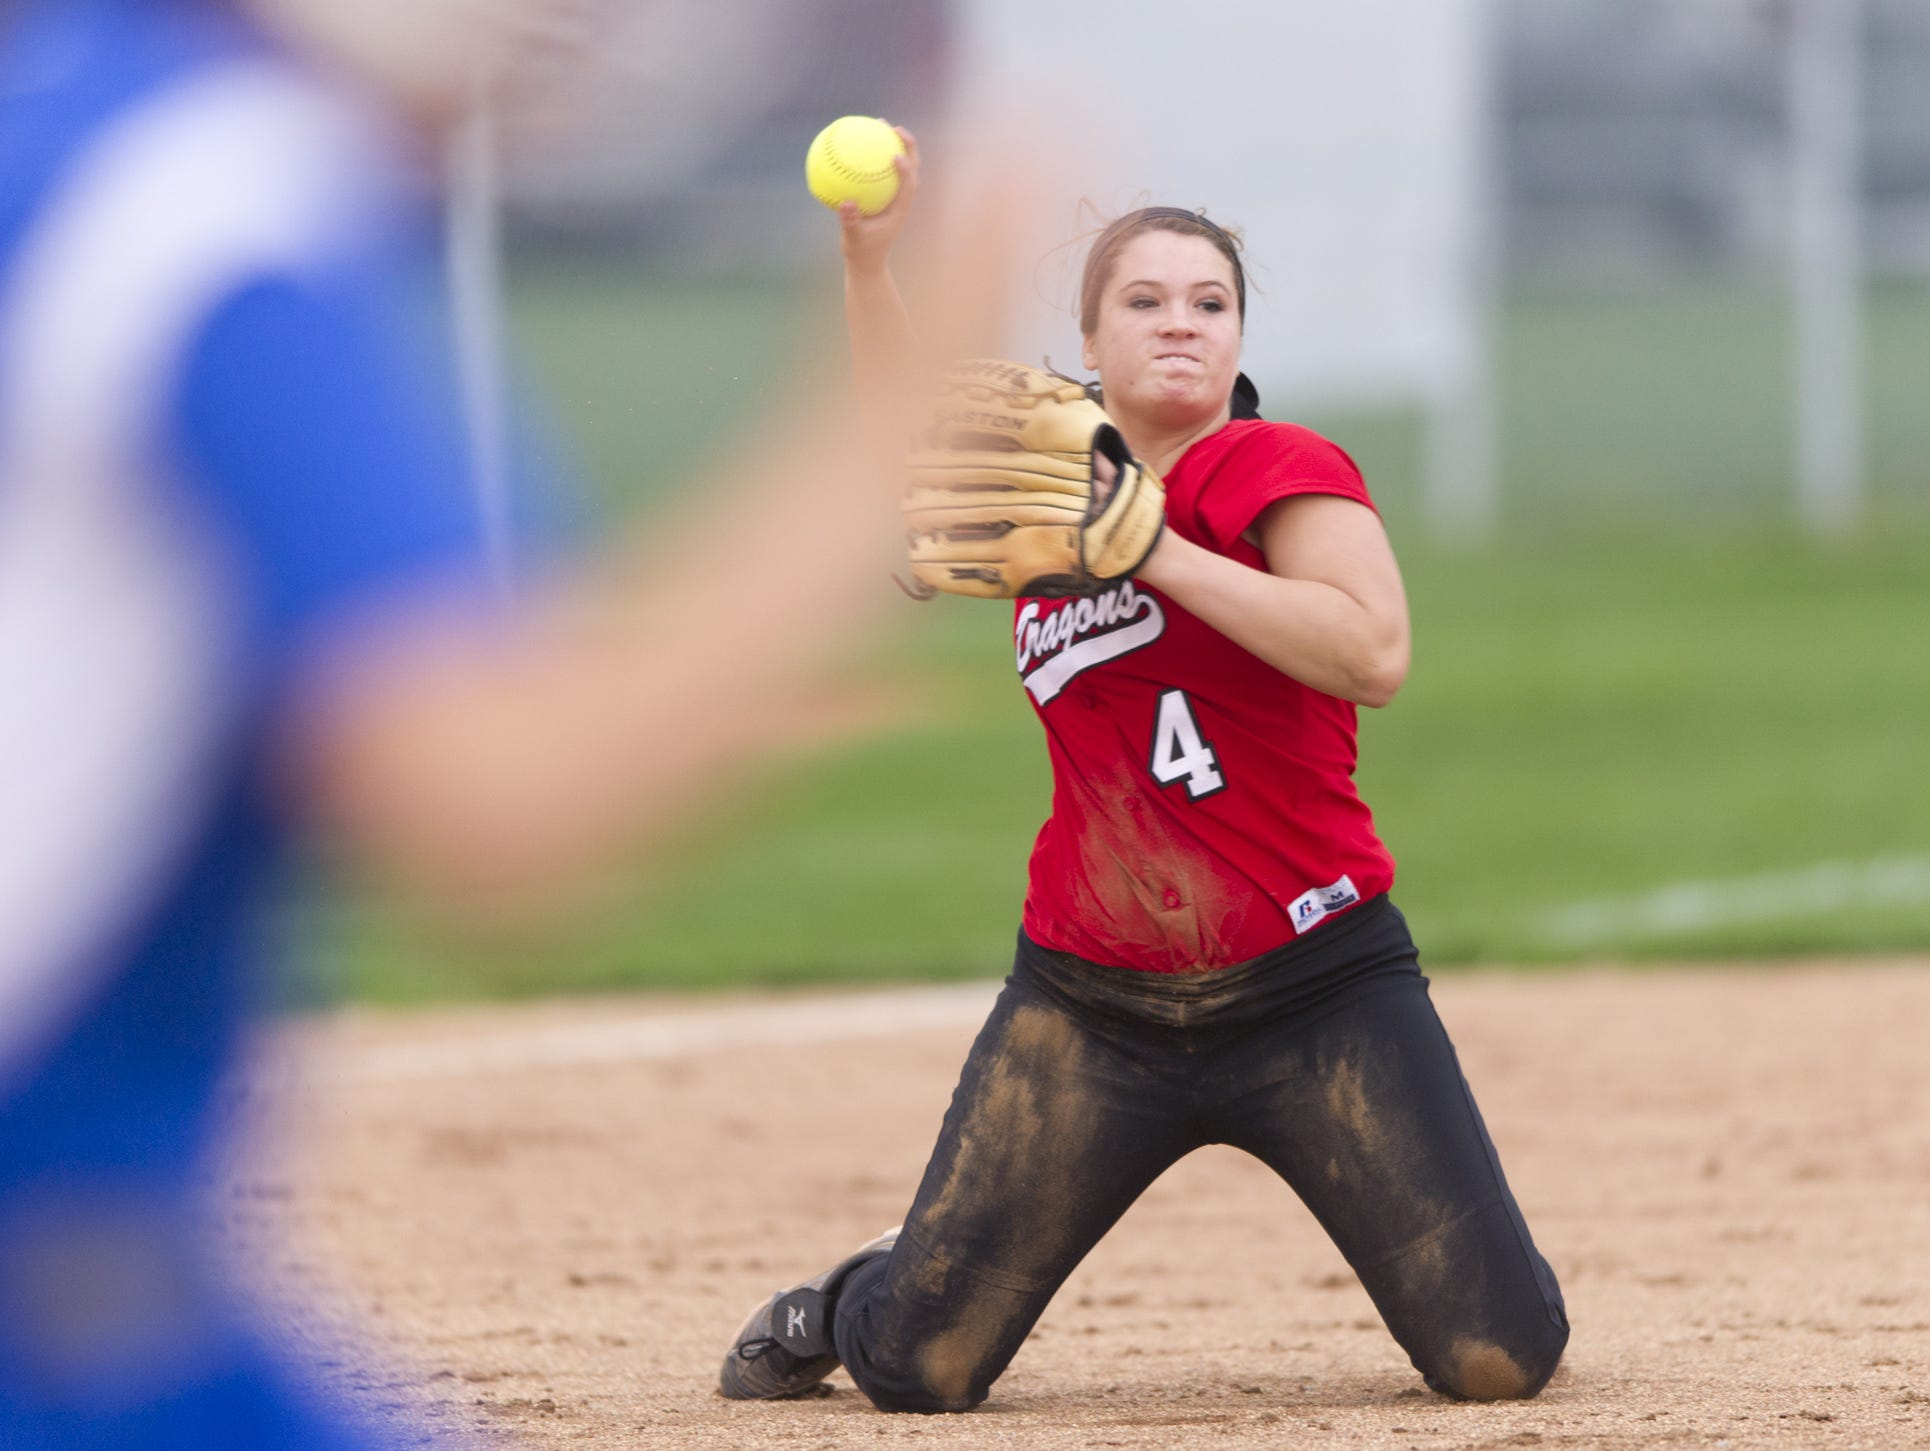 FILE -- New Palestine High School junior Issy Hoyt (4) makes the throw from her knees at third base to get the runner out at first. Hamilton Southeastern High School hosted New Palestine High School in varsity softball action, Thursday, April 16, 2015. New Palestine won 2-0, in 9 innings.